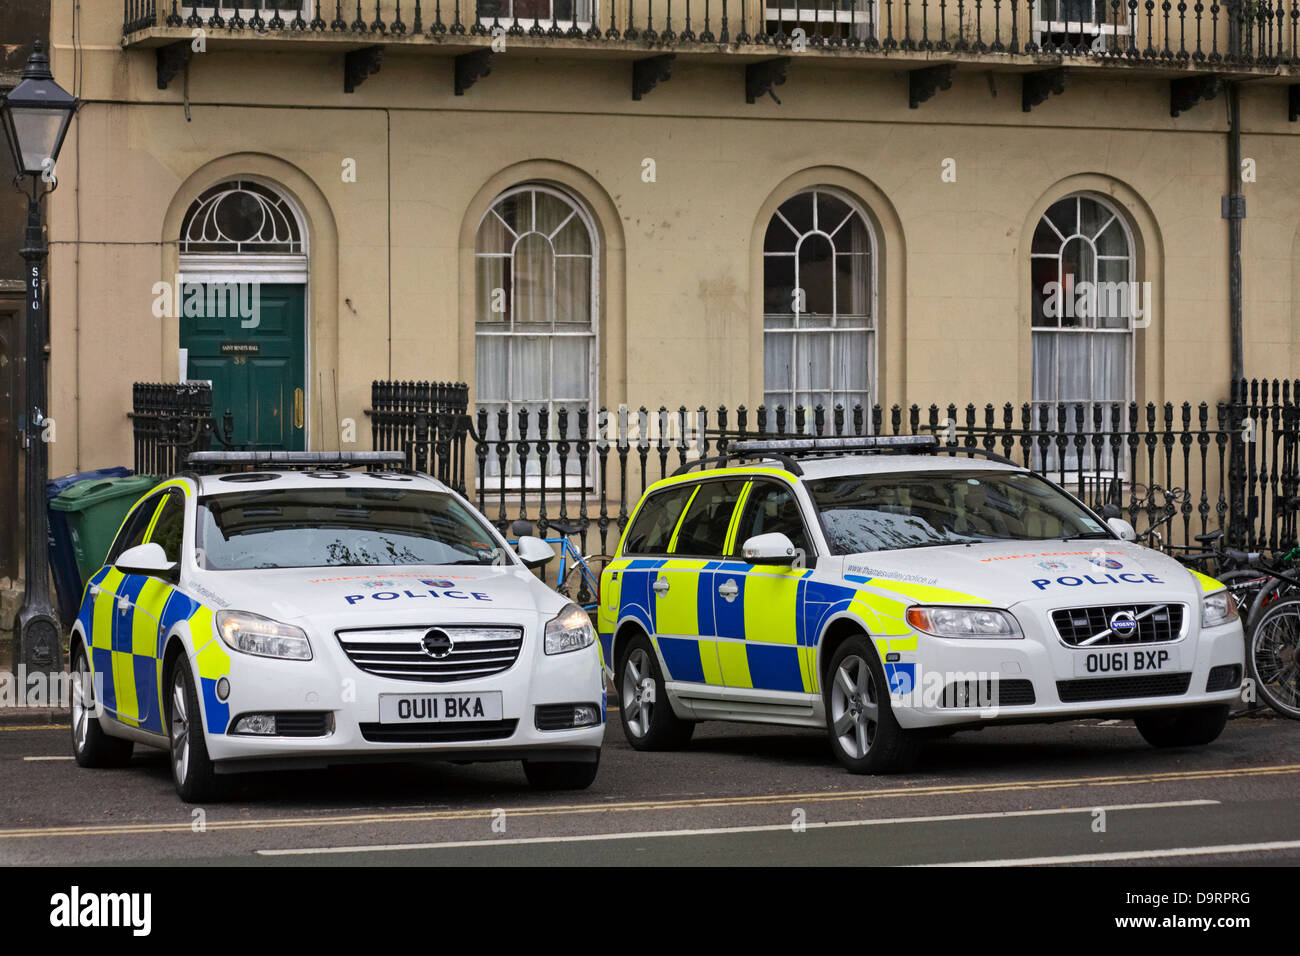 police cars parked at Oxford in May - Stock Image